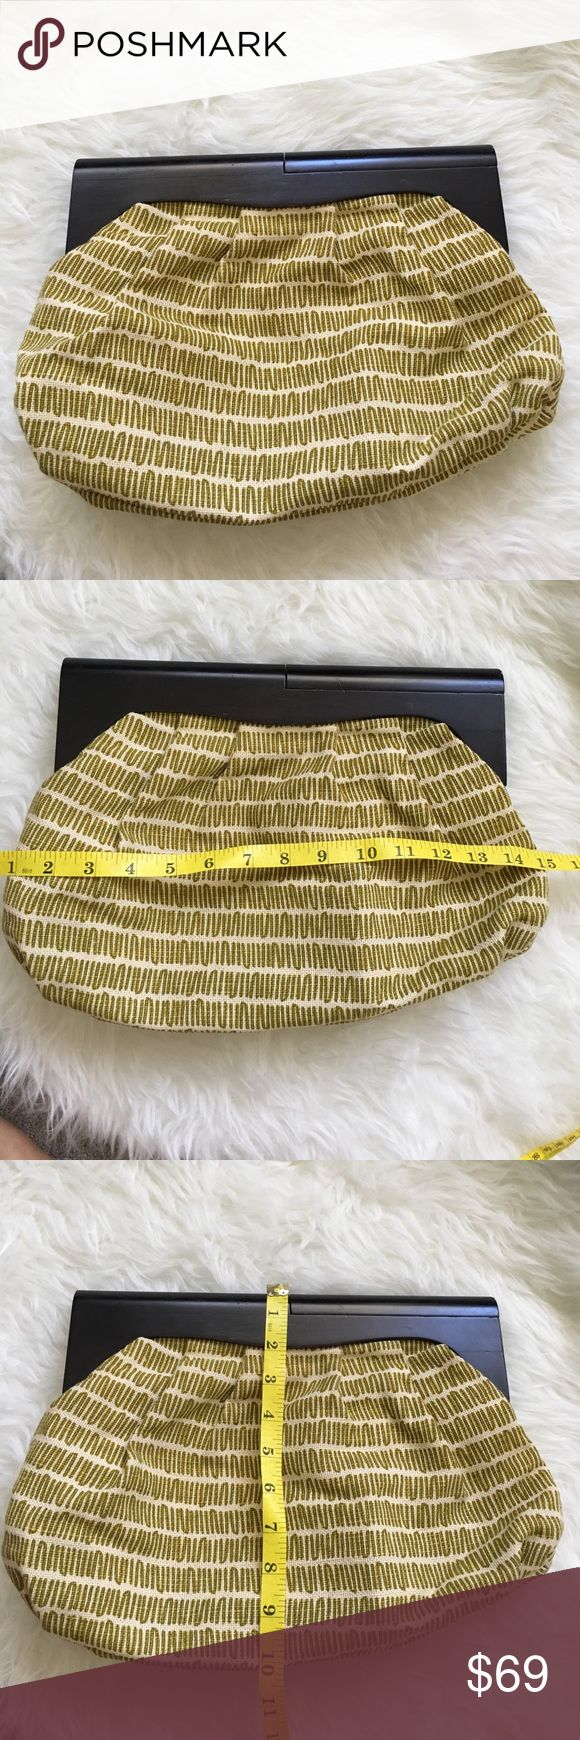 Old Navy Bag Excellent condition 😍 No trade 🚫 No model 💃🏻 Old Navy Bags